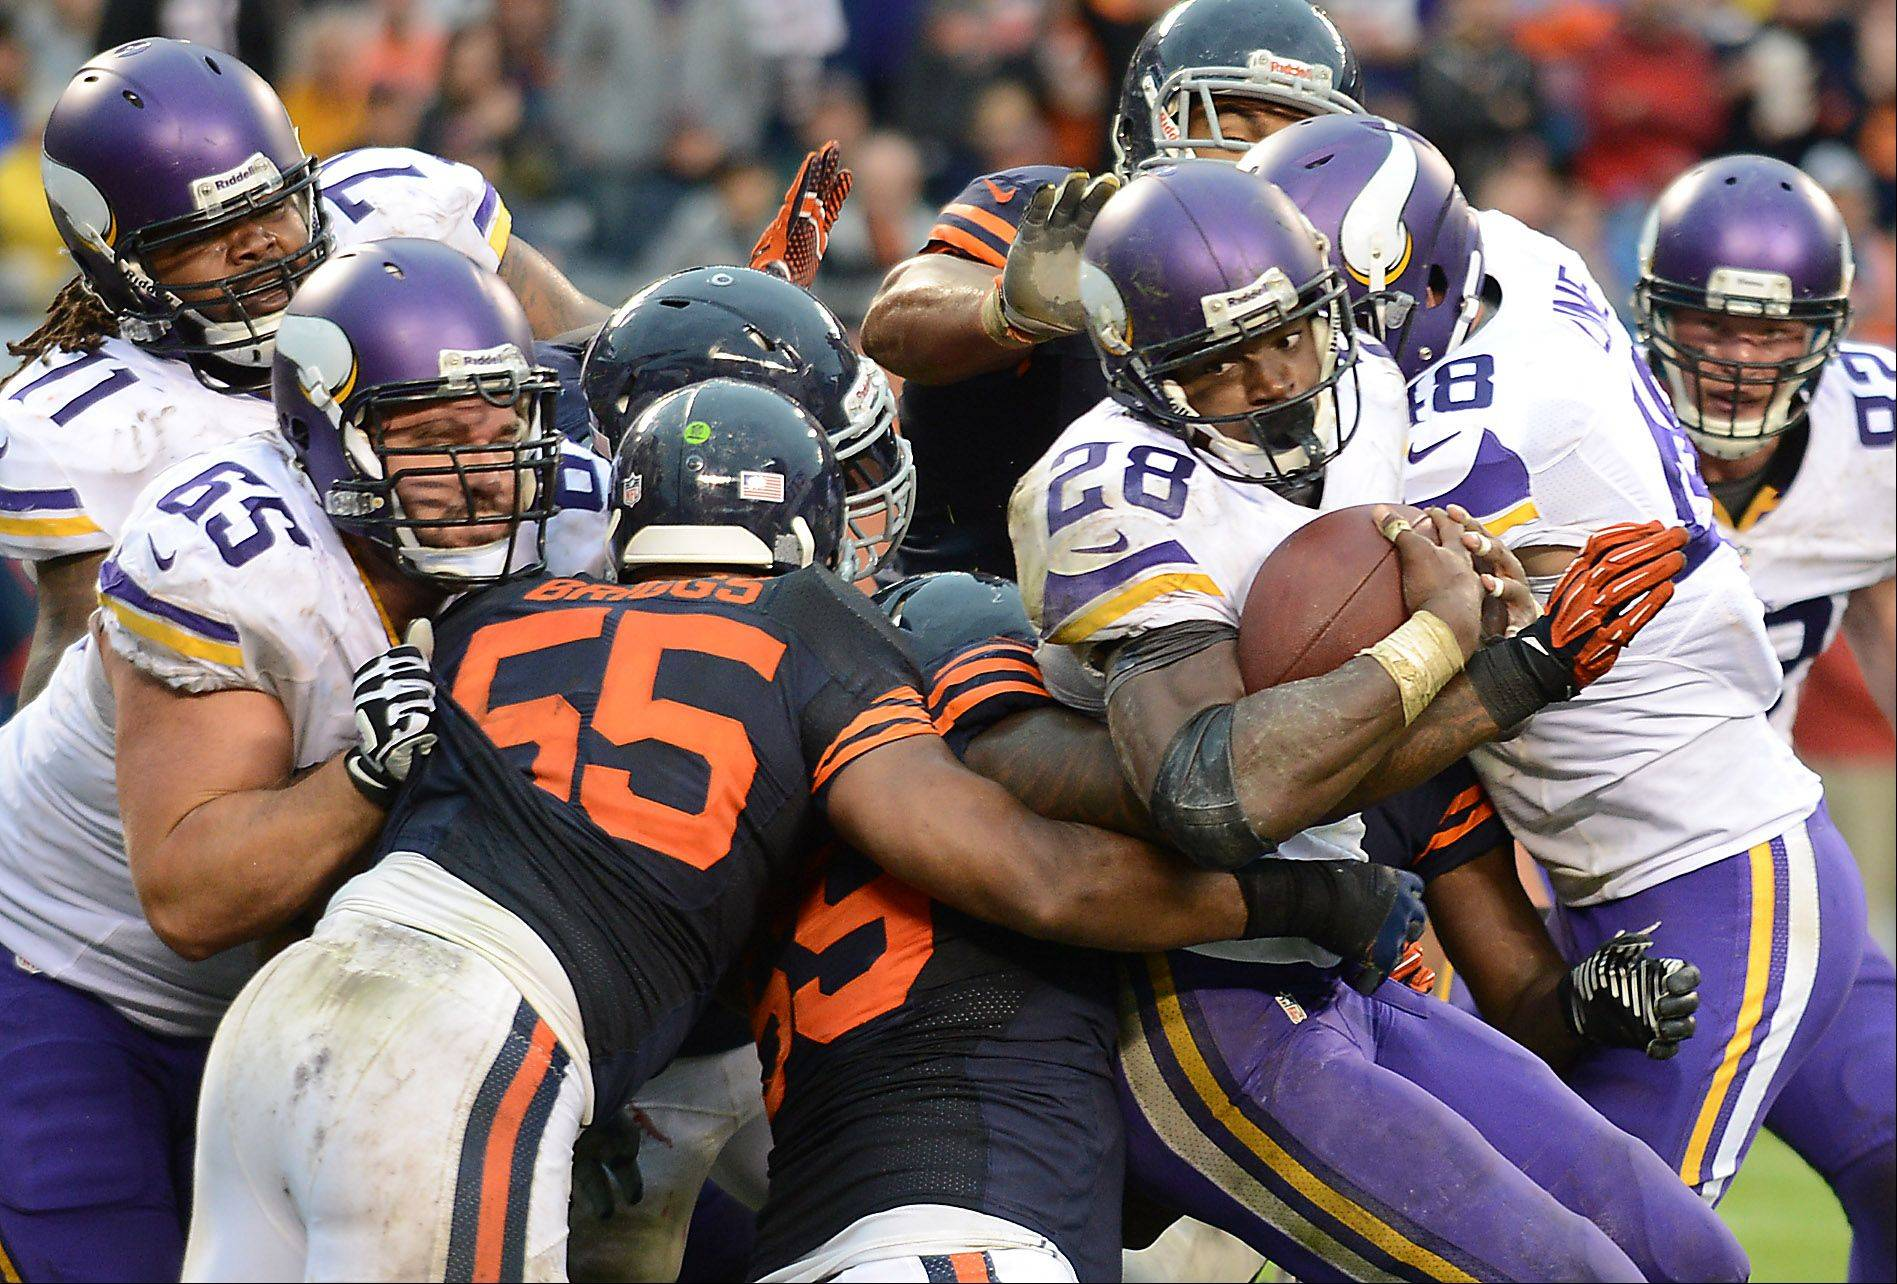 The Bears defense bottles up Minnesota Vikings running back Adrian Peterson (28) on third and short yardage in the fourth quarter during Sunday's game at Soldier Field in Chicago.